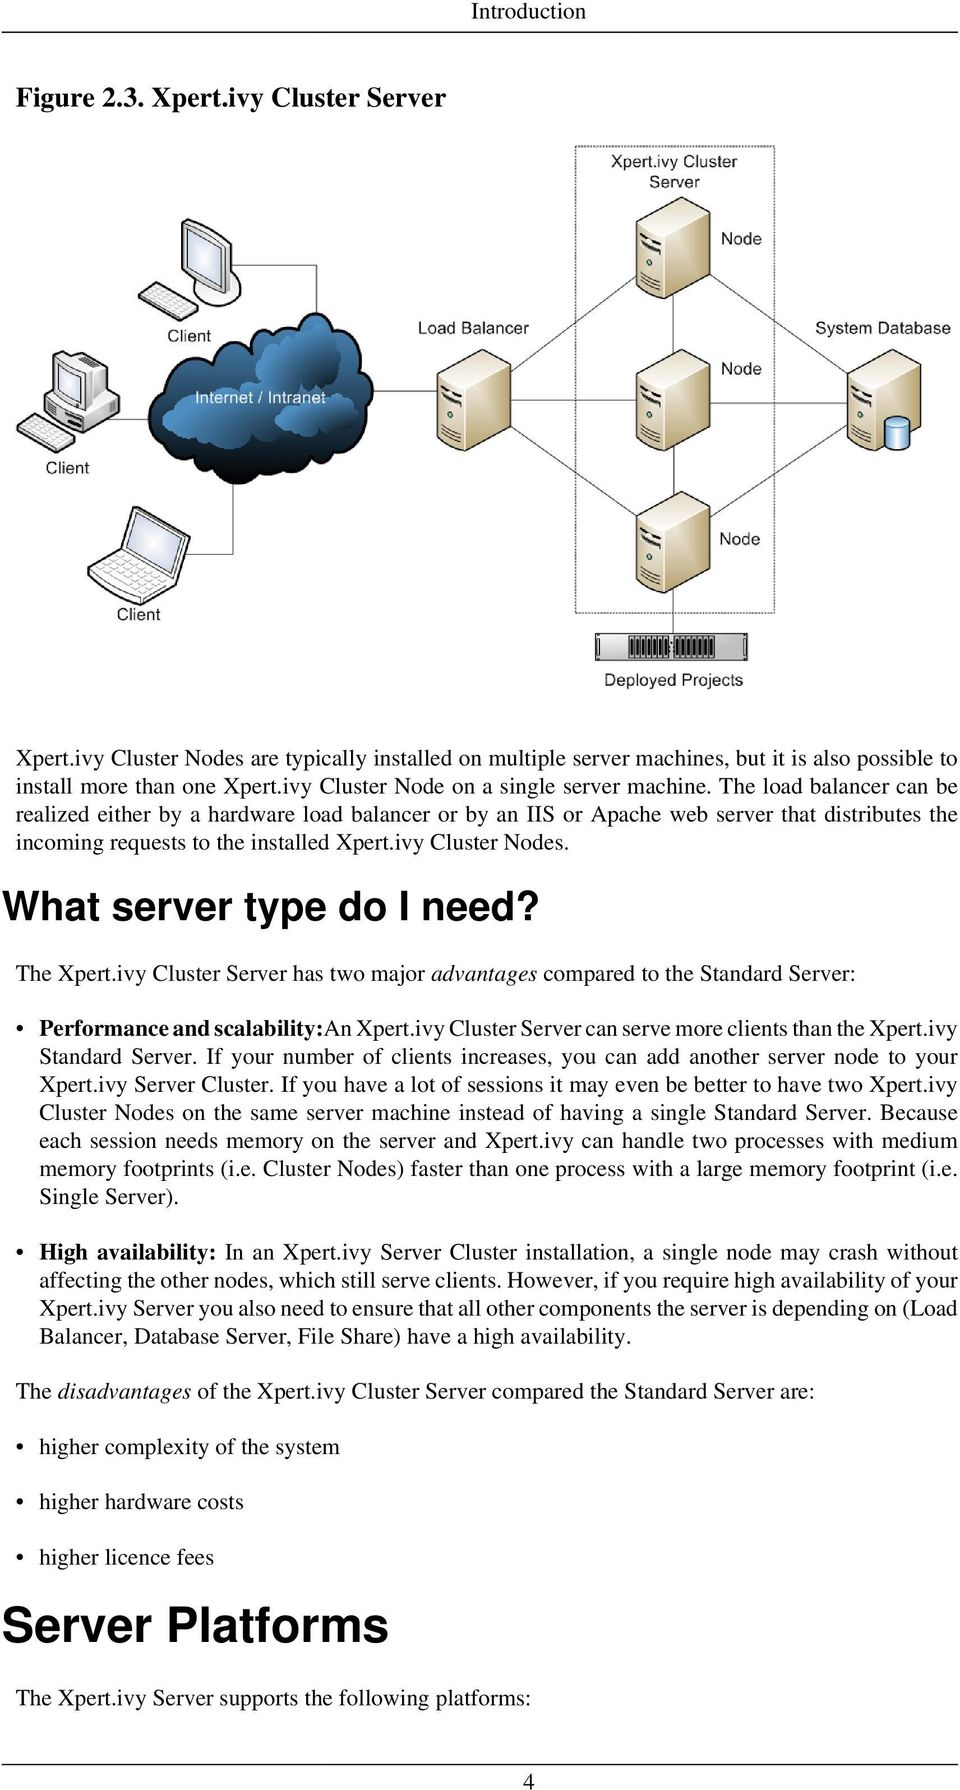 The load balancer can be realized either by a hardware load balancer or by an IIS or Apache web server that distributes the incoming requests to the installed Xpert.ivy Cluster Nodes.